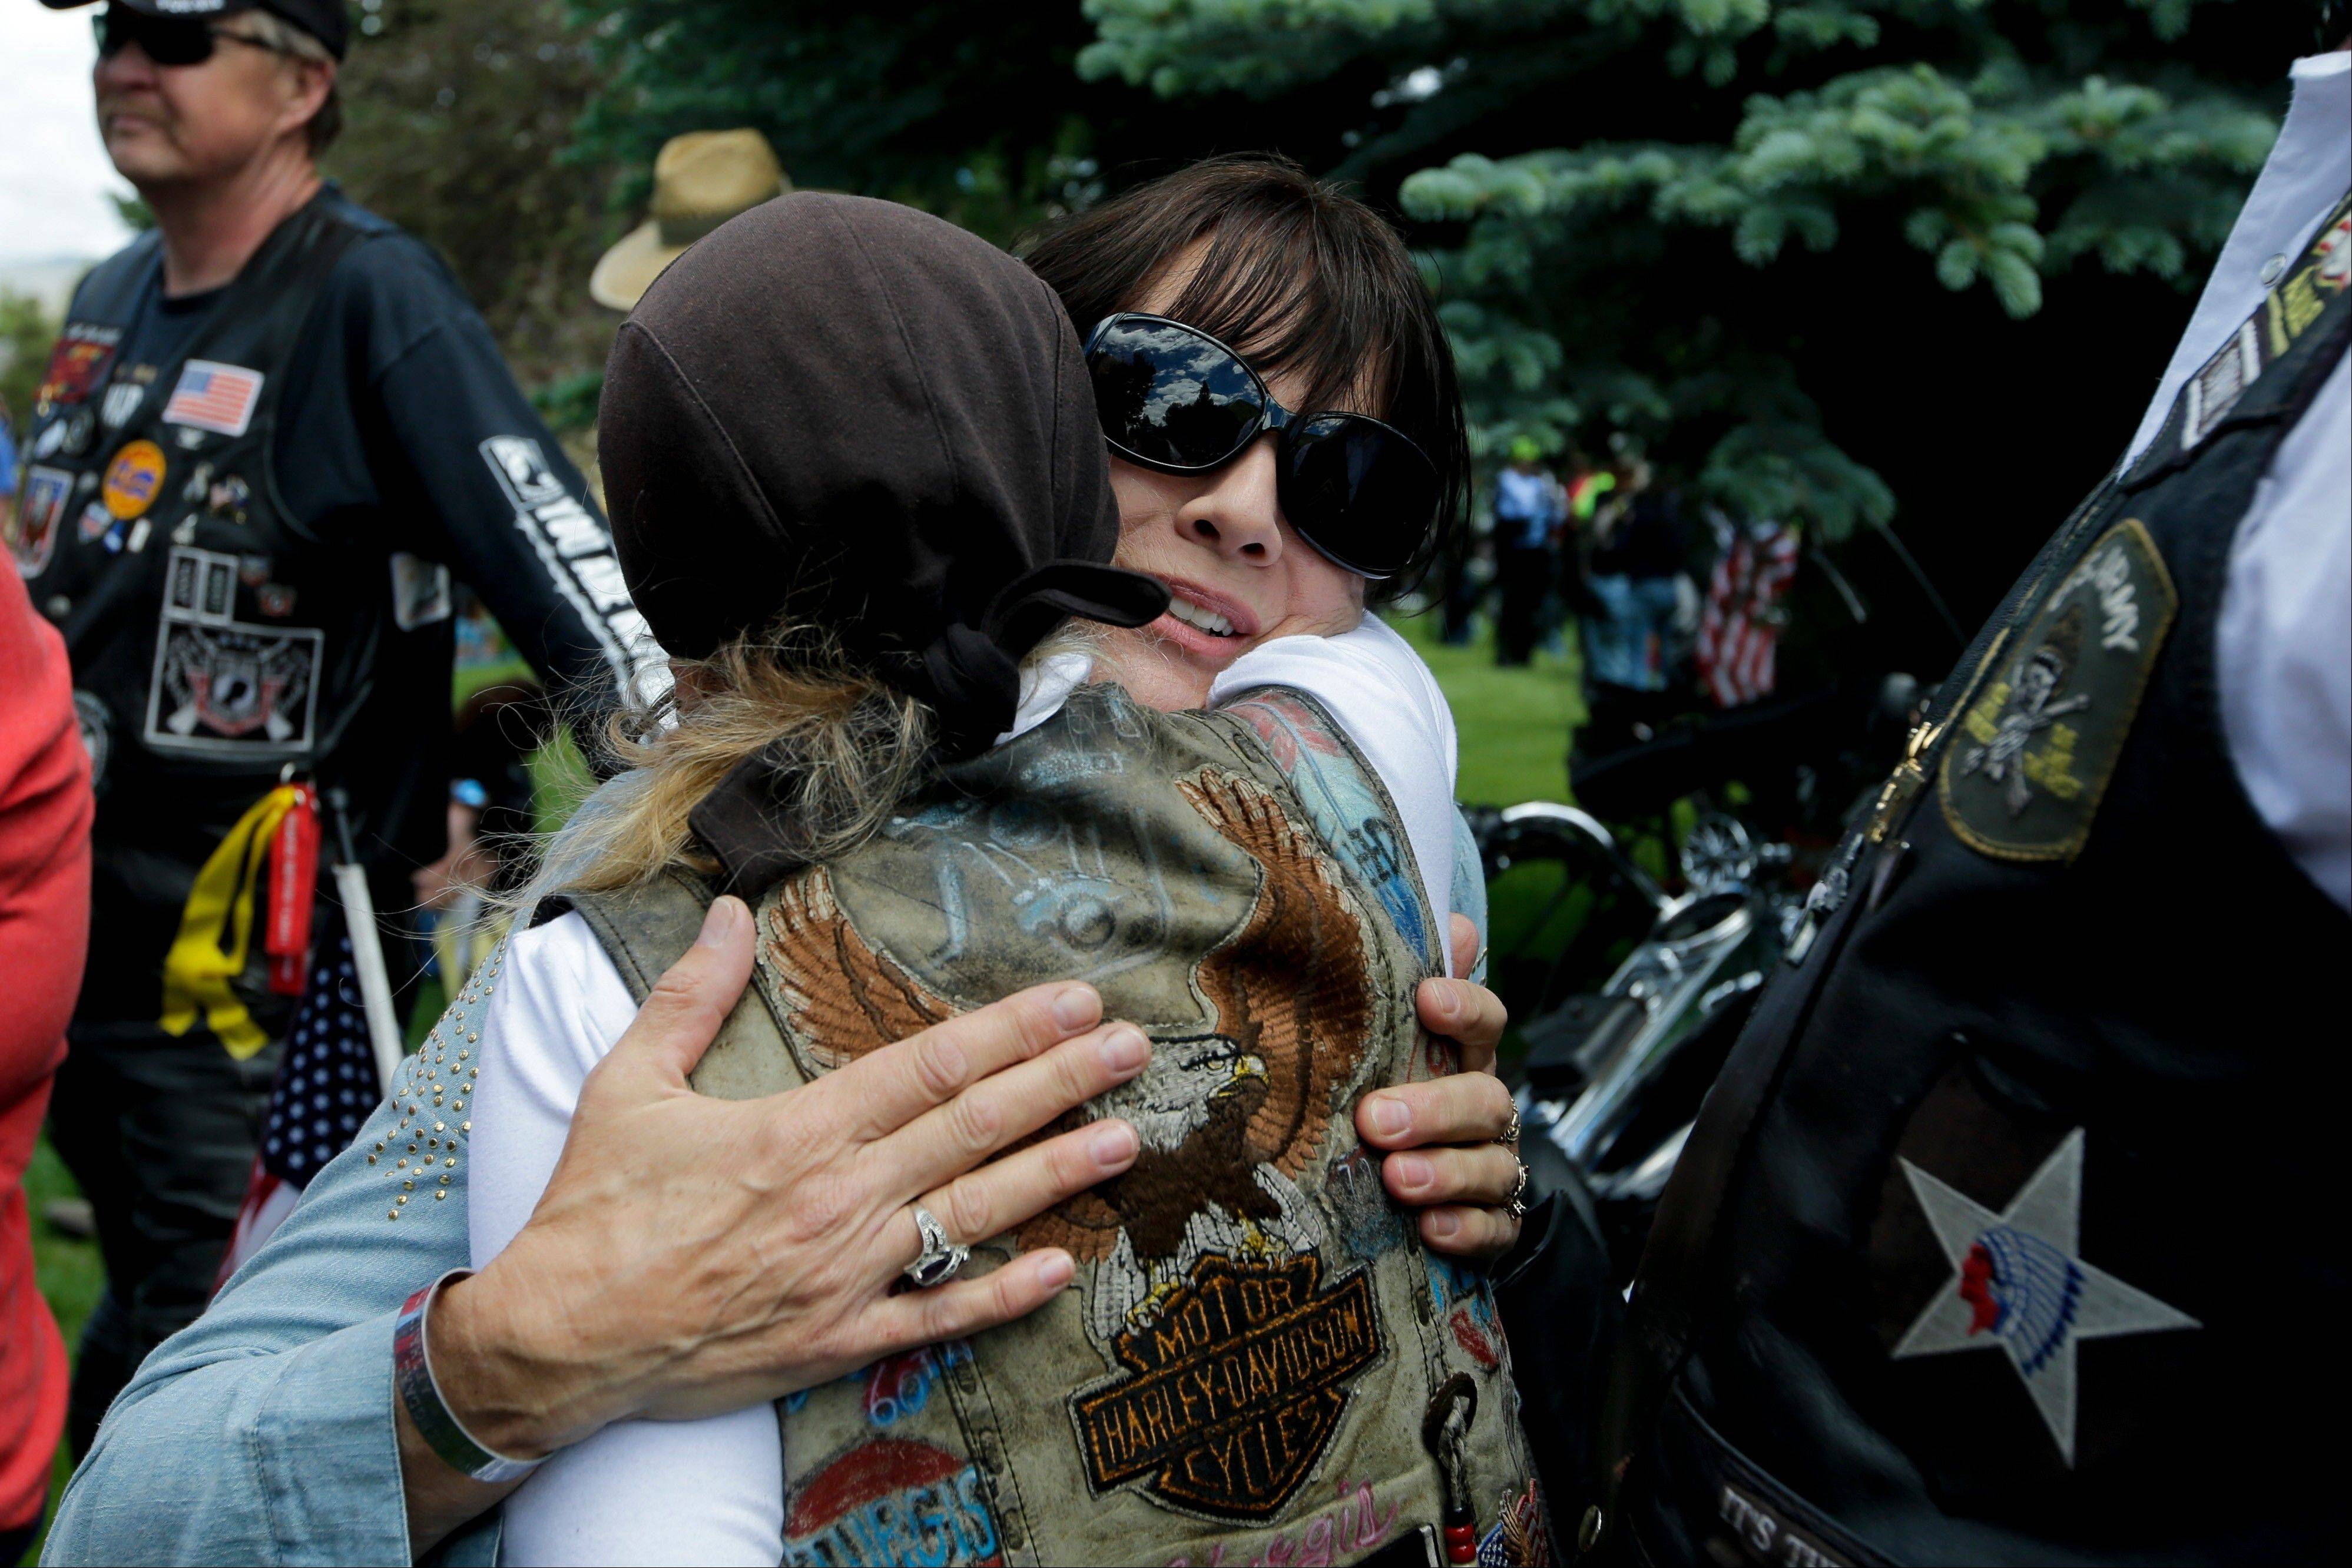 Jani Bergdahl, center, mother of captive U.S. Army Sgt. Bowe Bergdahl, gets a hug Saturday from a well-wisher at the �Bring Bowe Back� celebration held to honor Sgt. Bergdahl in Hailey, Idaho.